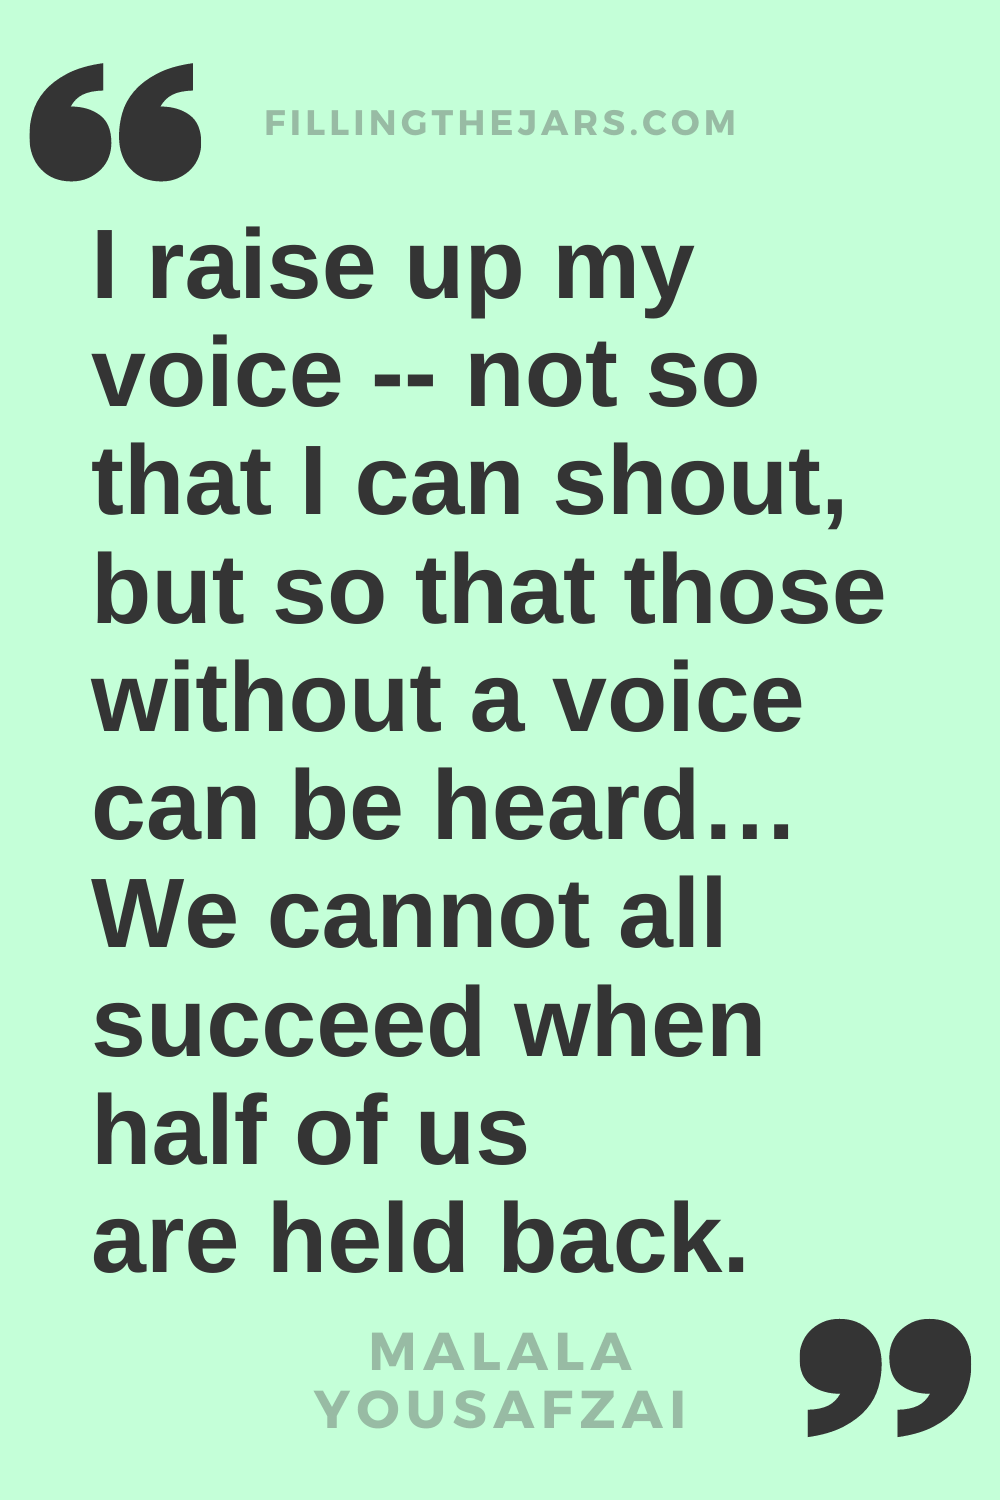 Malala Yousafzai I raise up my voice inspirational quote for women in difficult times in black text on light green background.